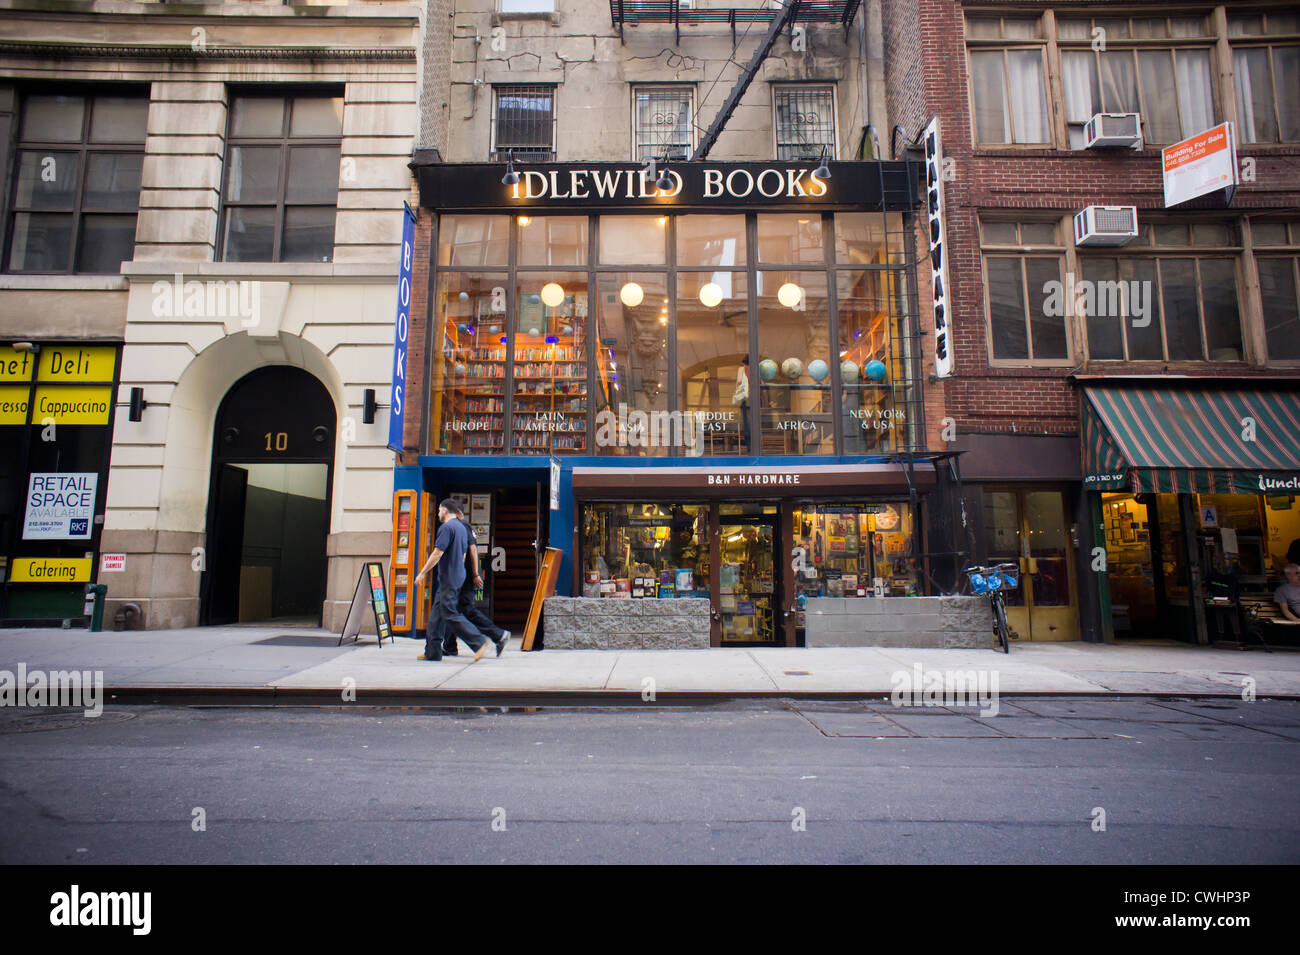 Idlewild Books, an independent bookstore specializing in travel and world literature - Stock Image